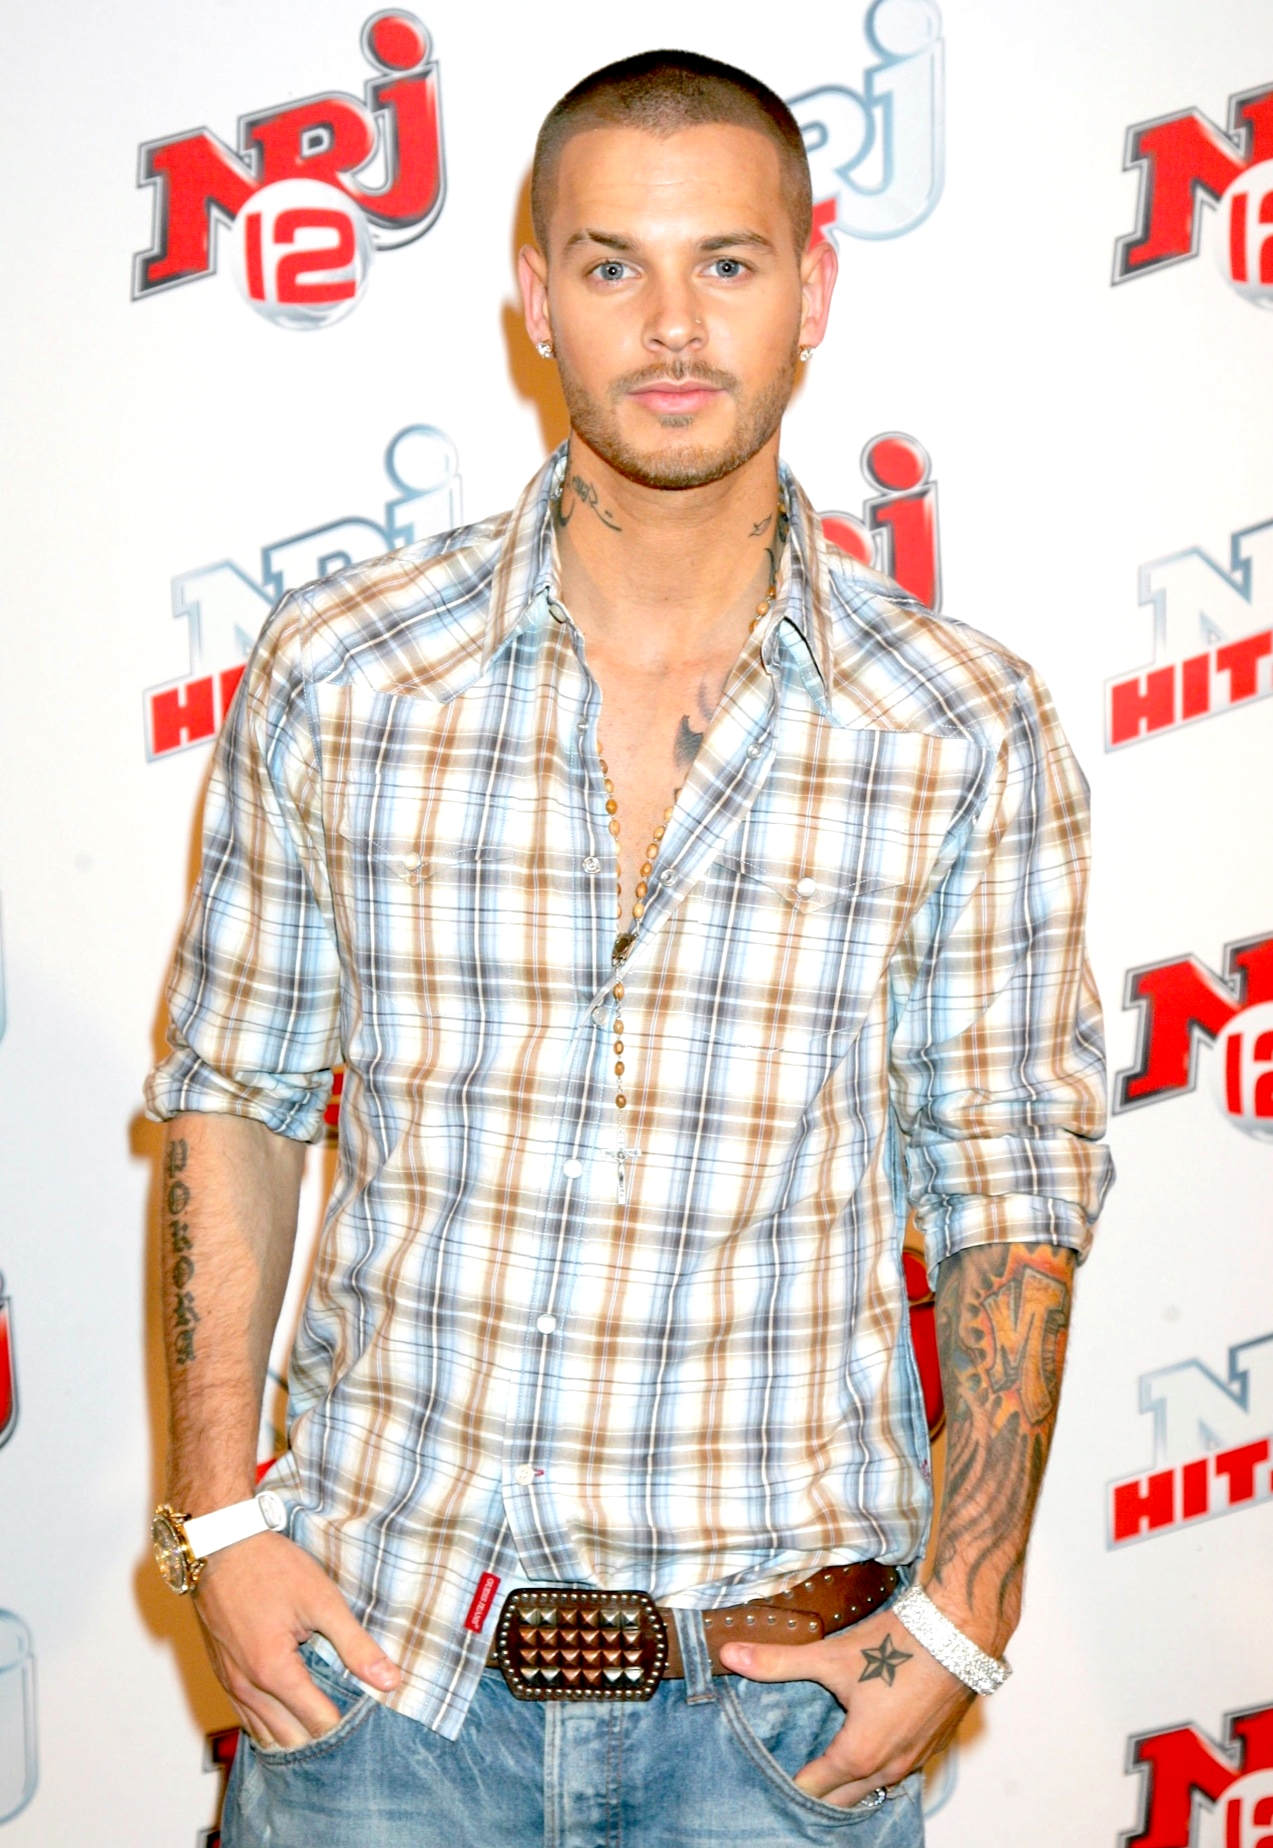 Matt pokora images mars 23 2007 lancement de nrj hits hd wallpaper and background photos 30970423 - Image de m pokora ...